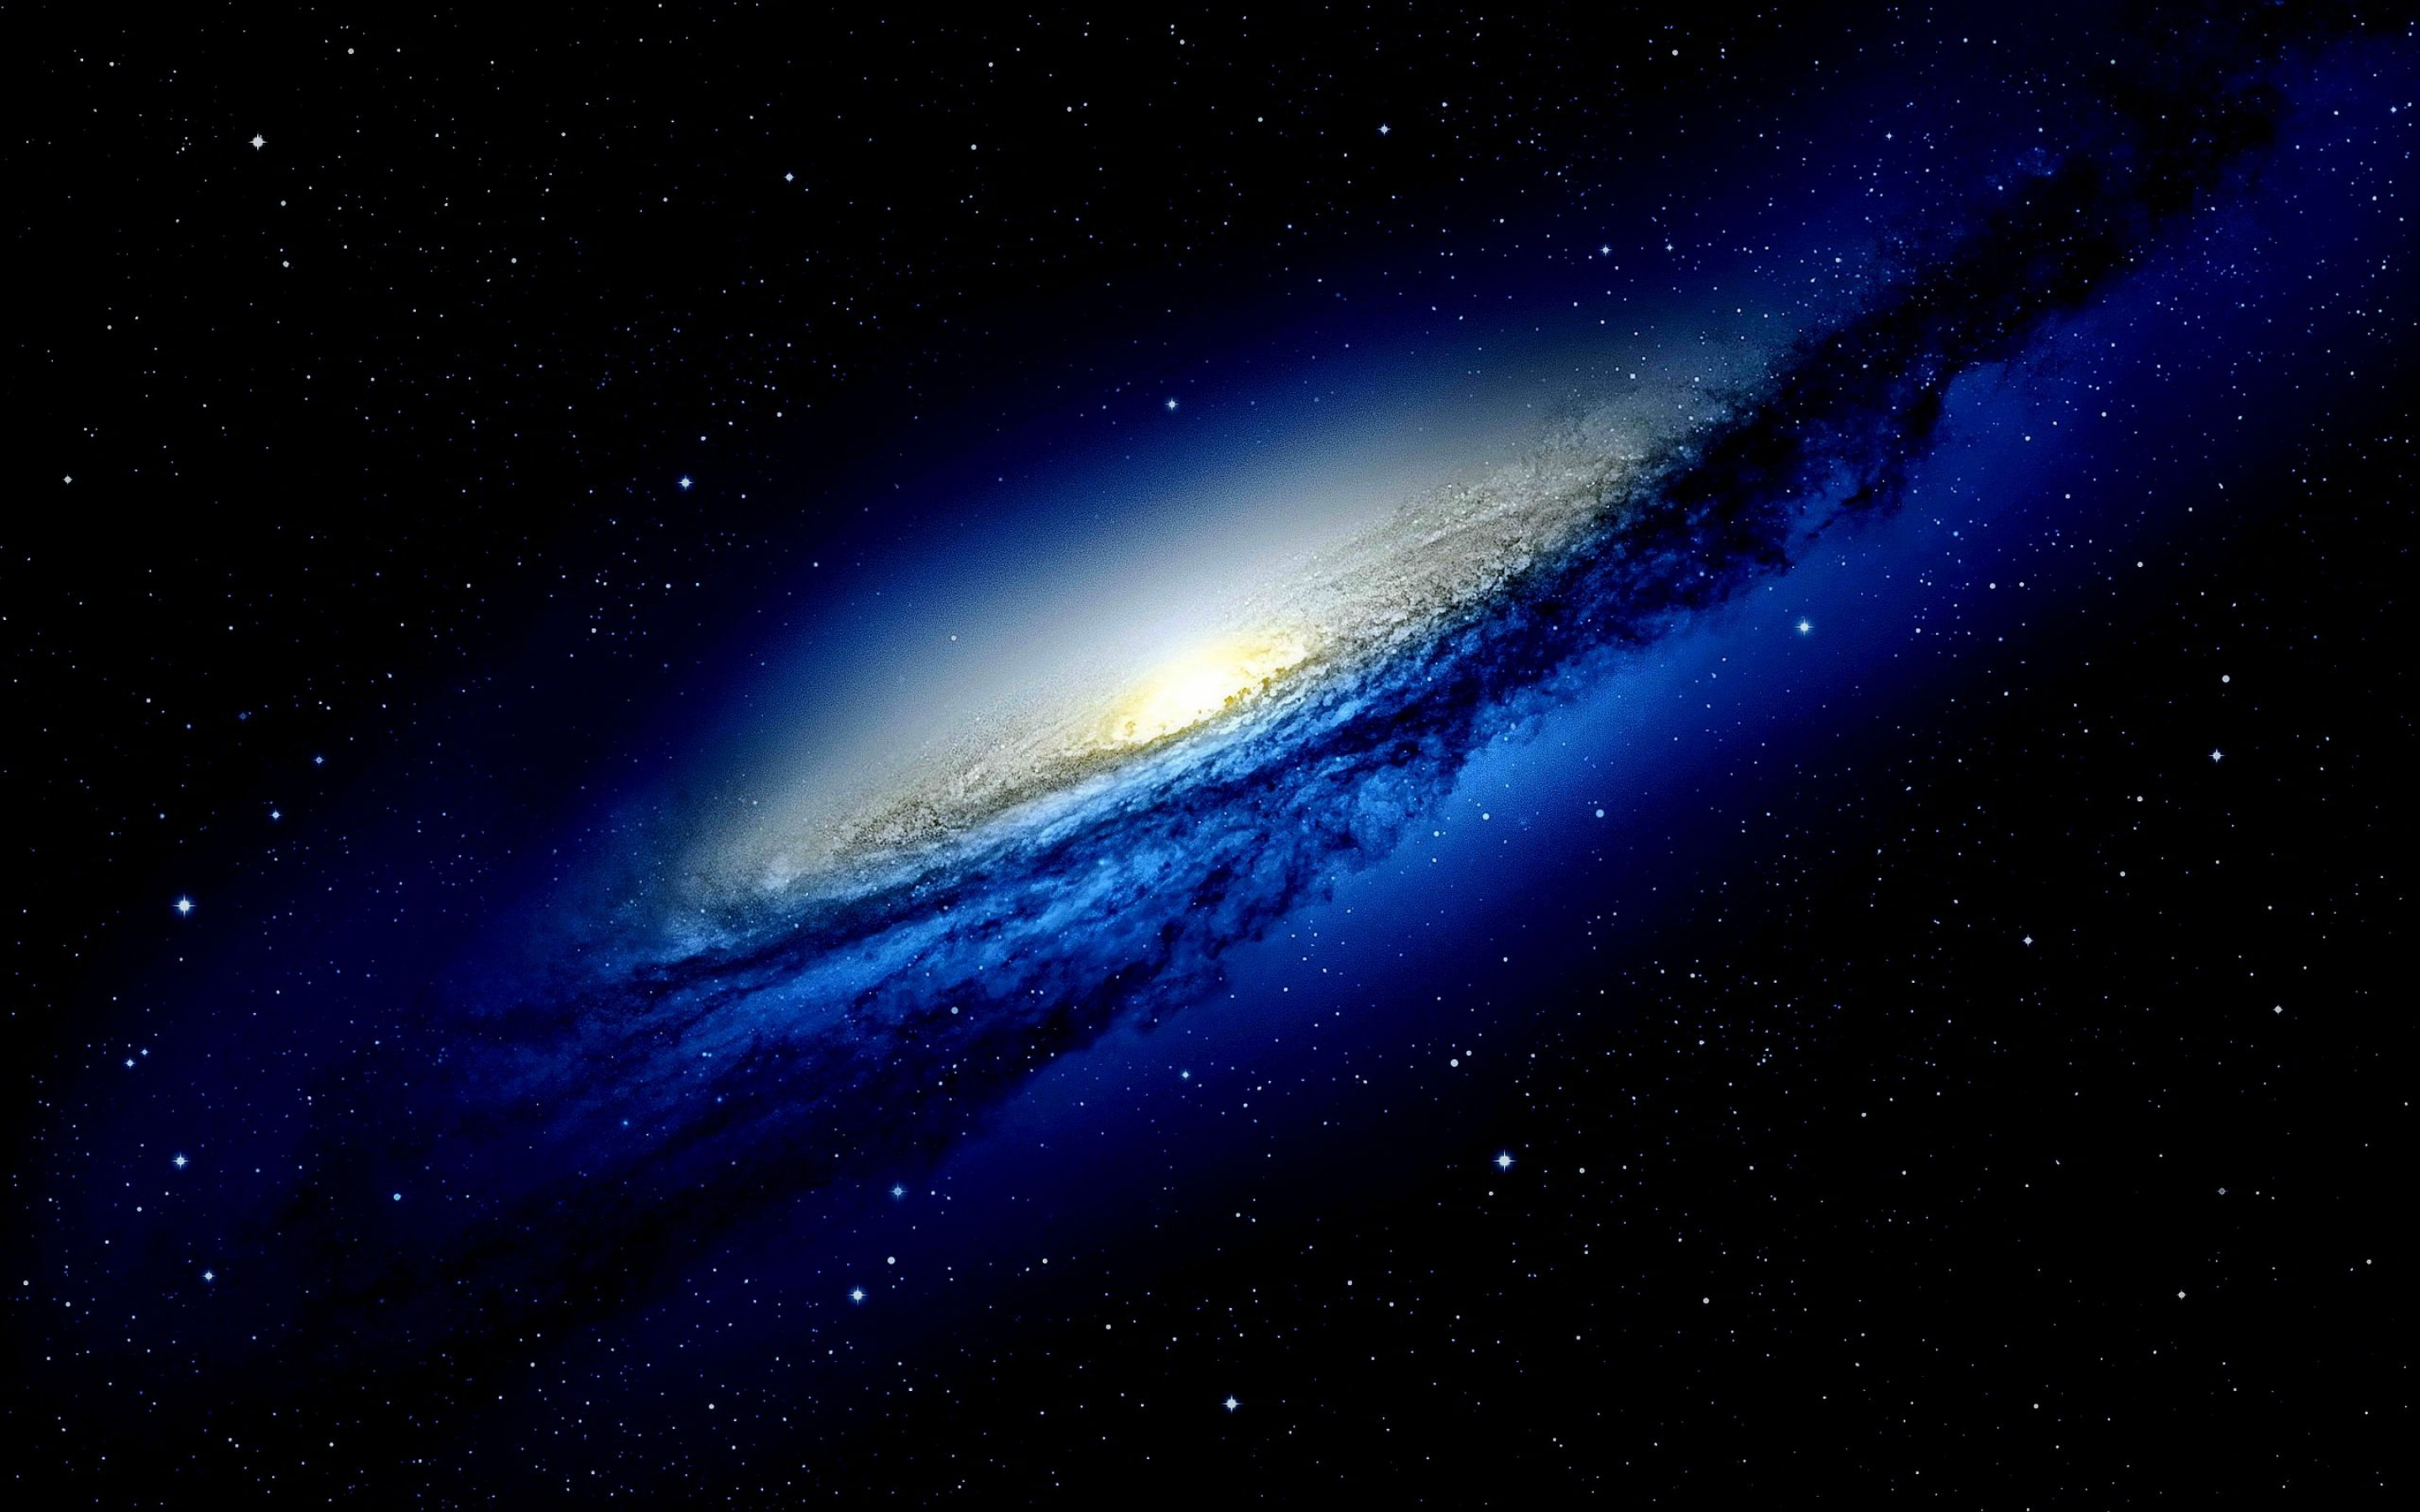 galaxy wallpaper background blue